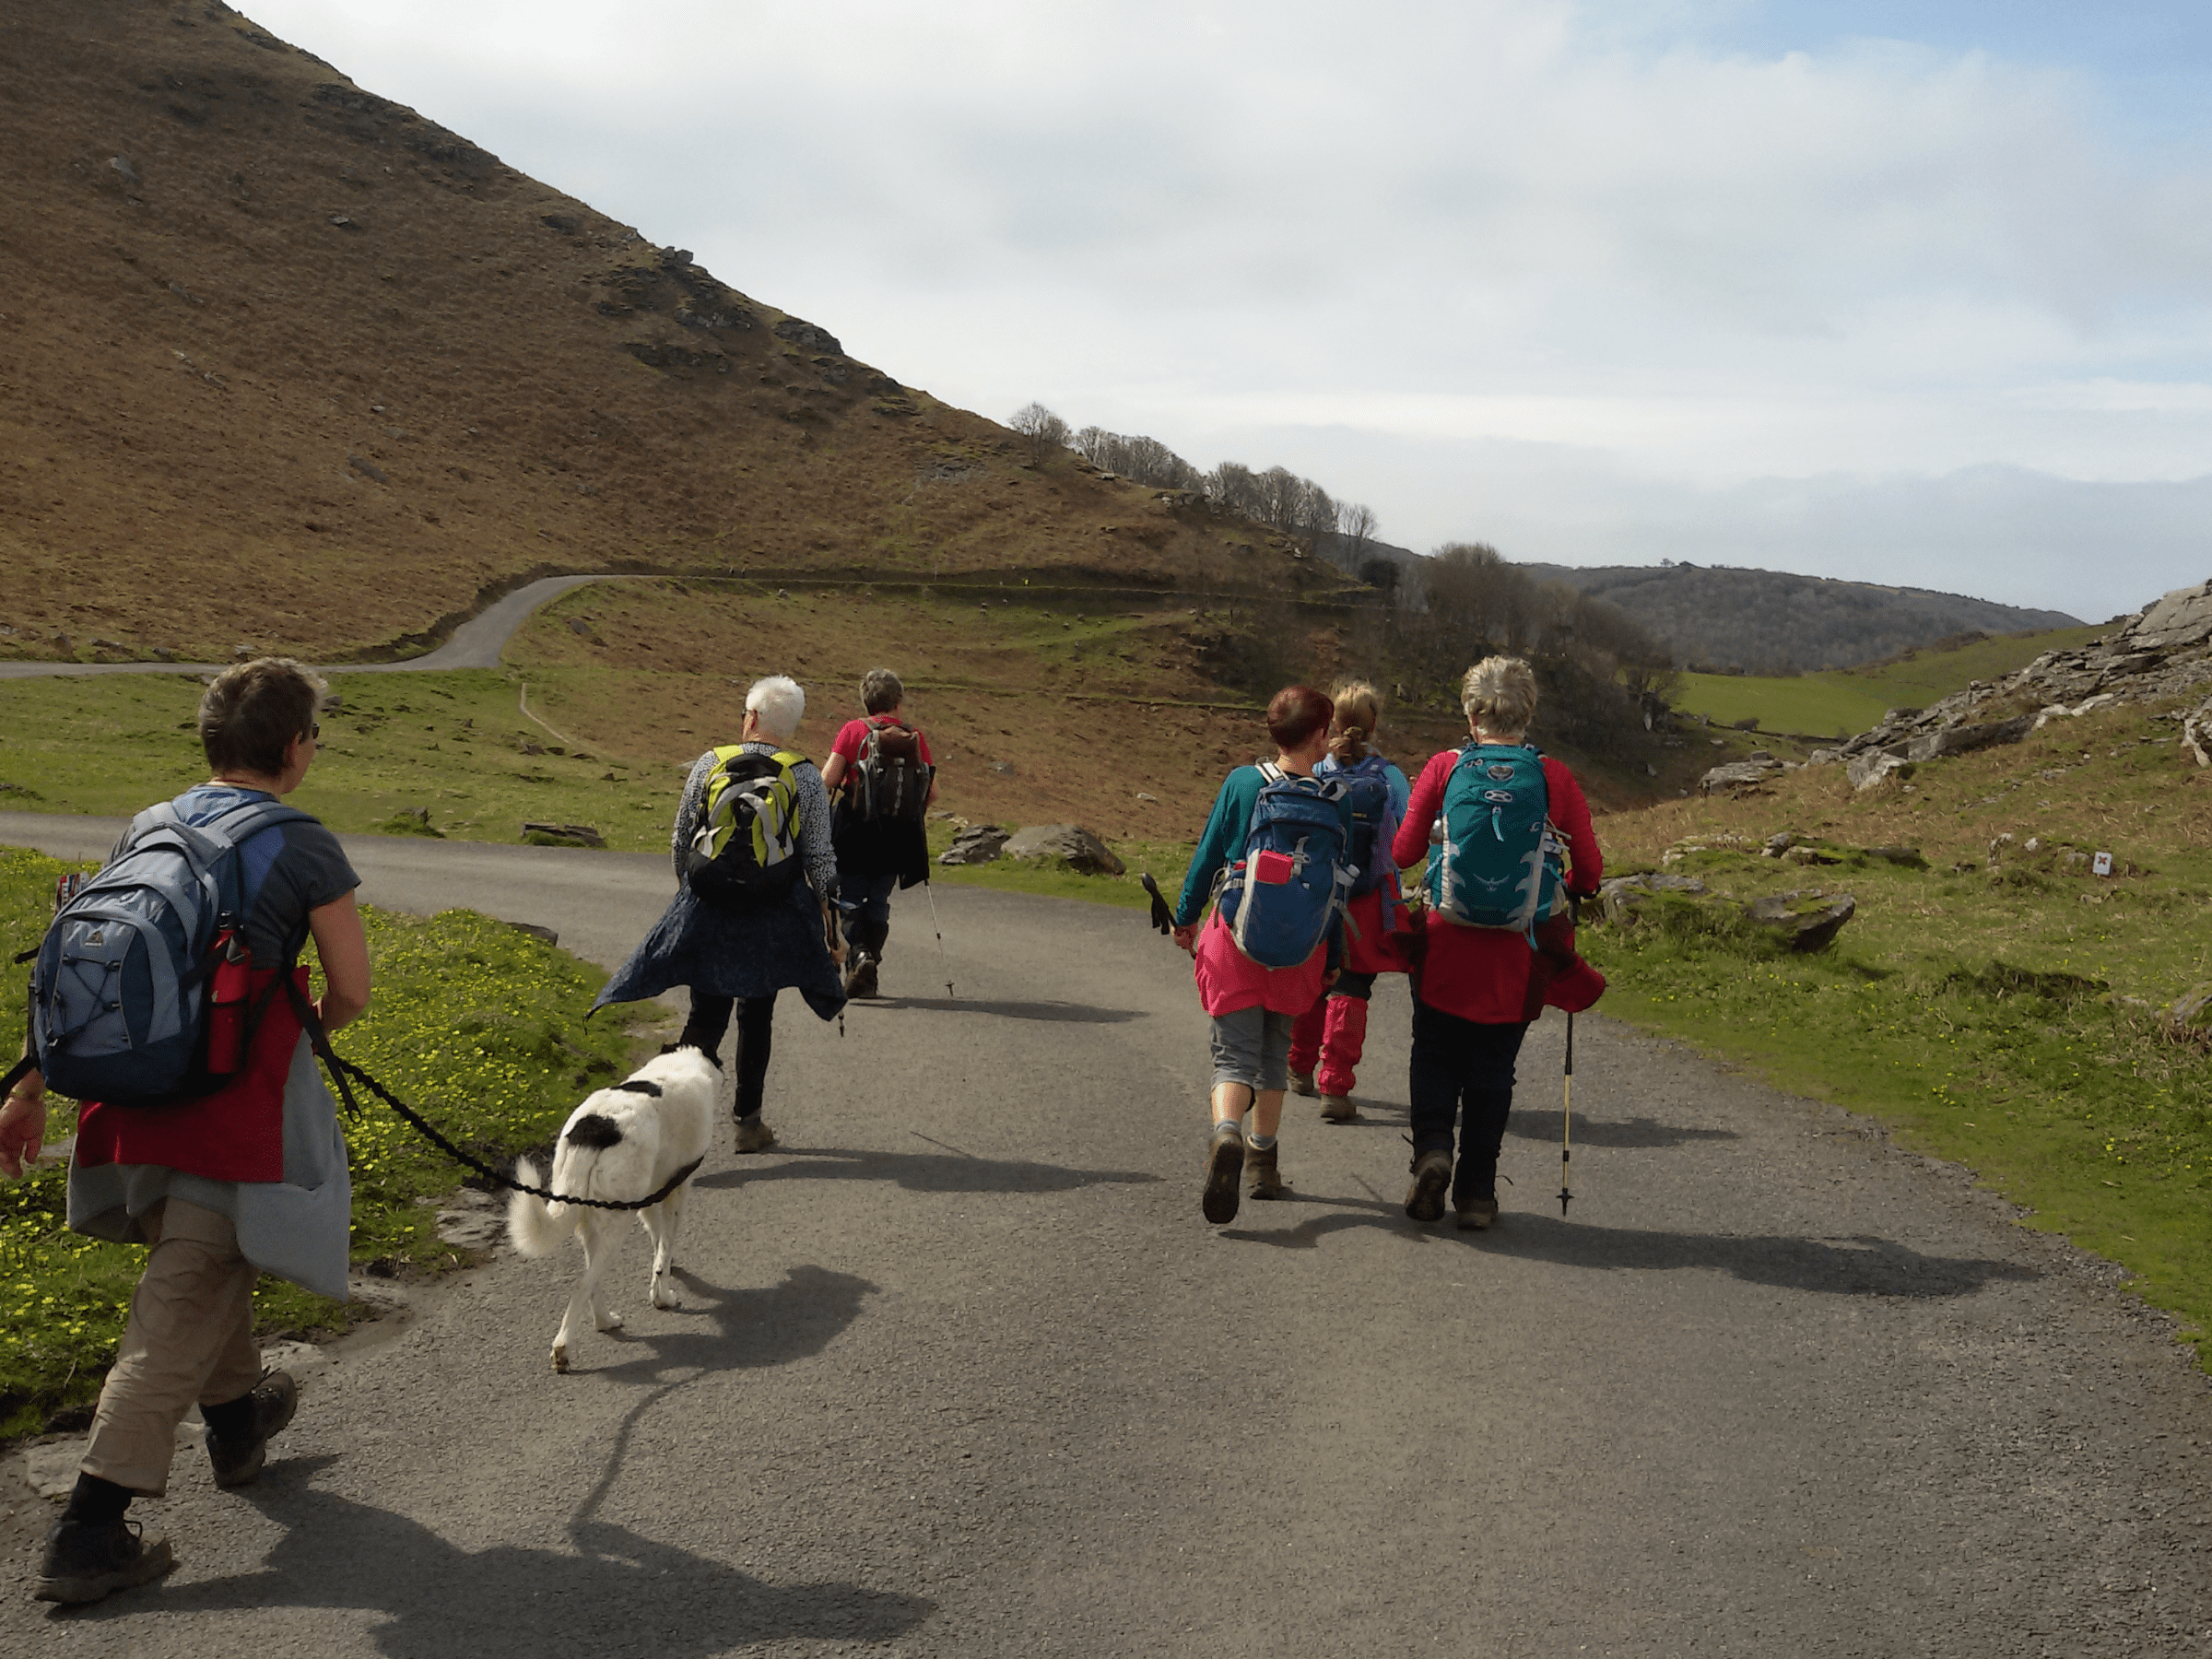 South West Coast Path guided walking holiday